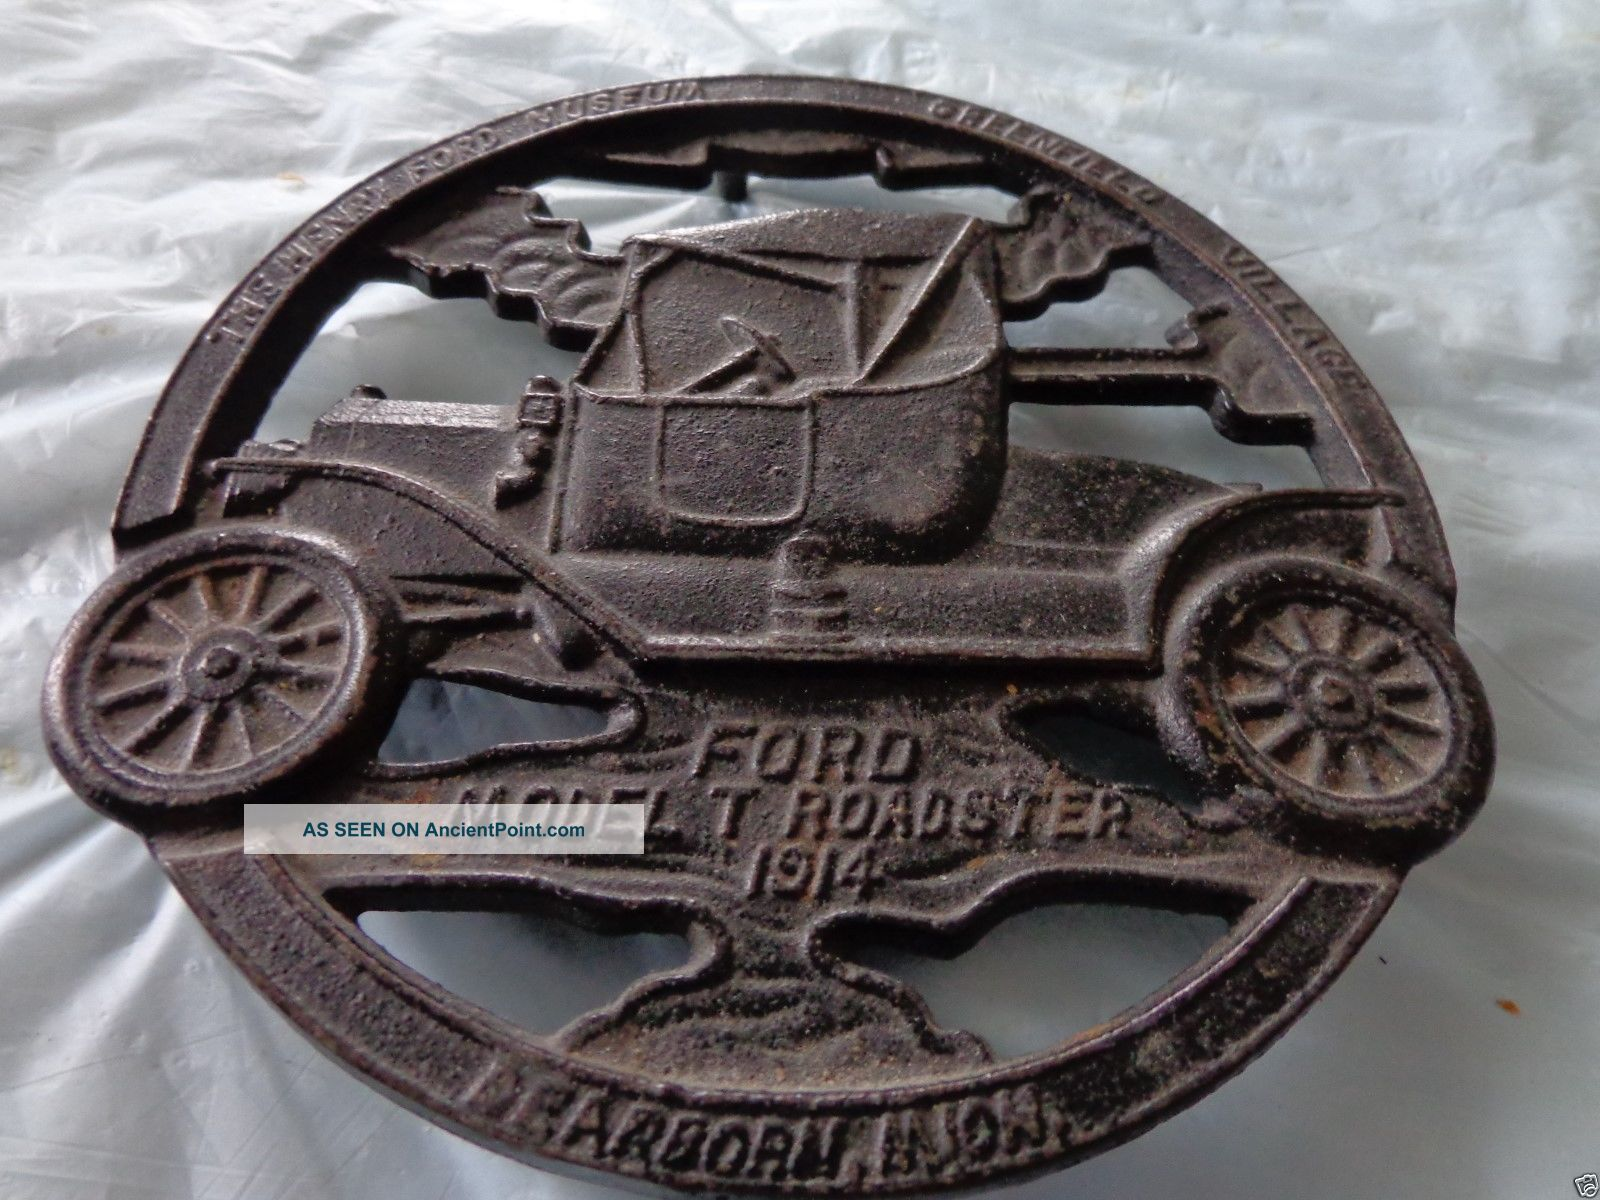 Ford Model T Roadster 1914 Cast Iron Trivet Greenfield Village - 1952 Good Cond Trivets photo